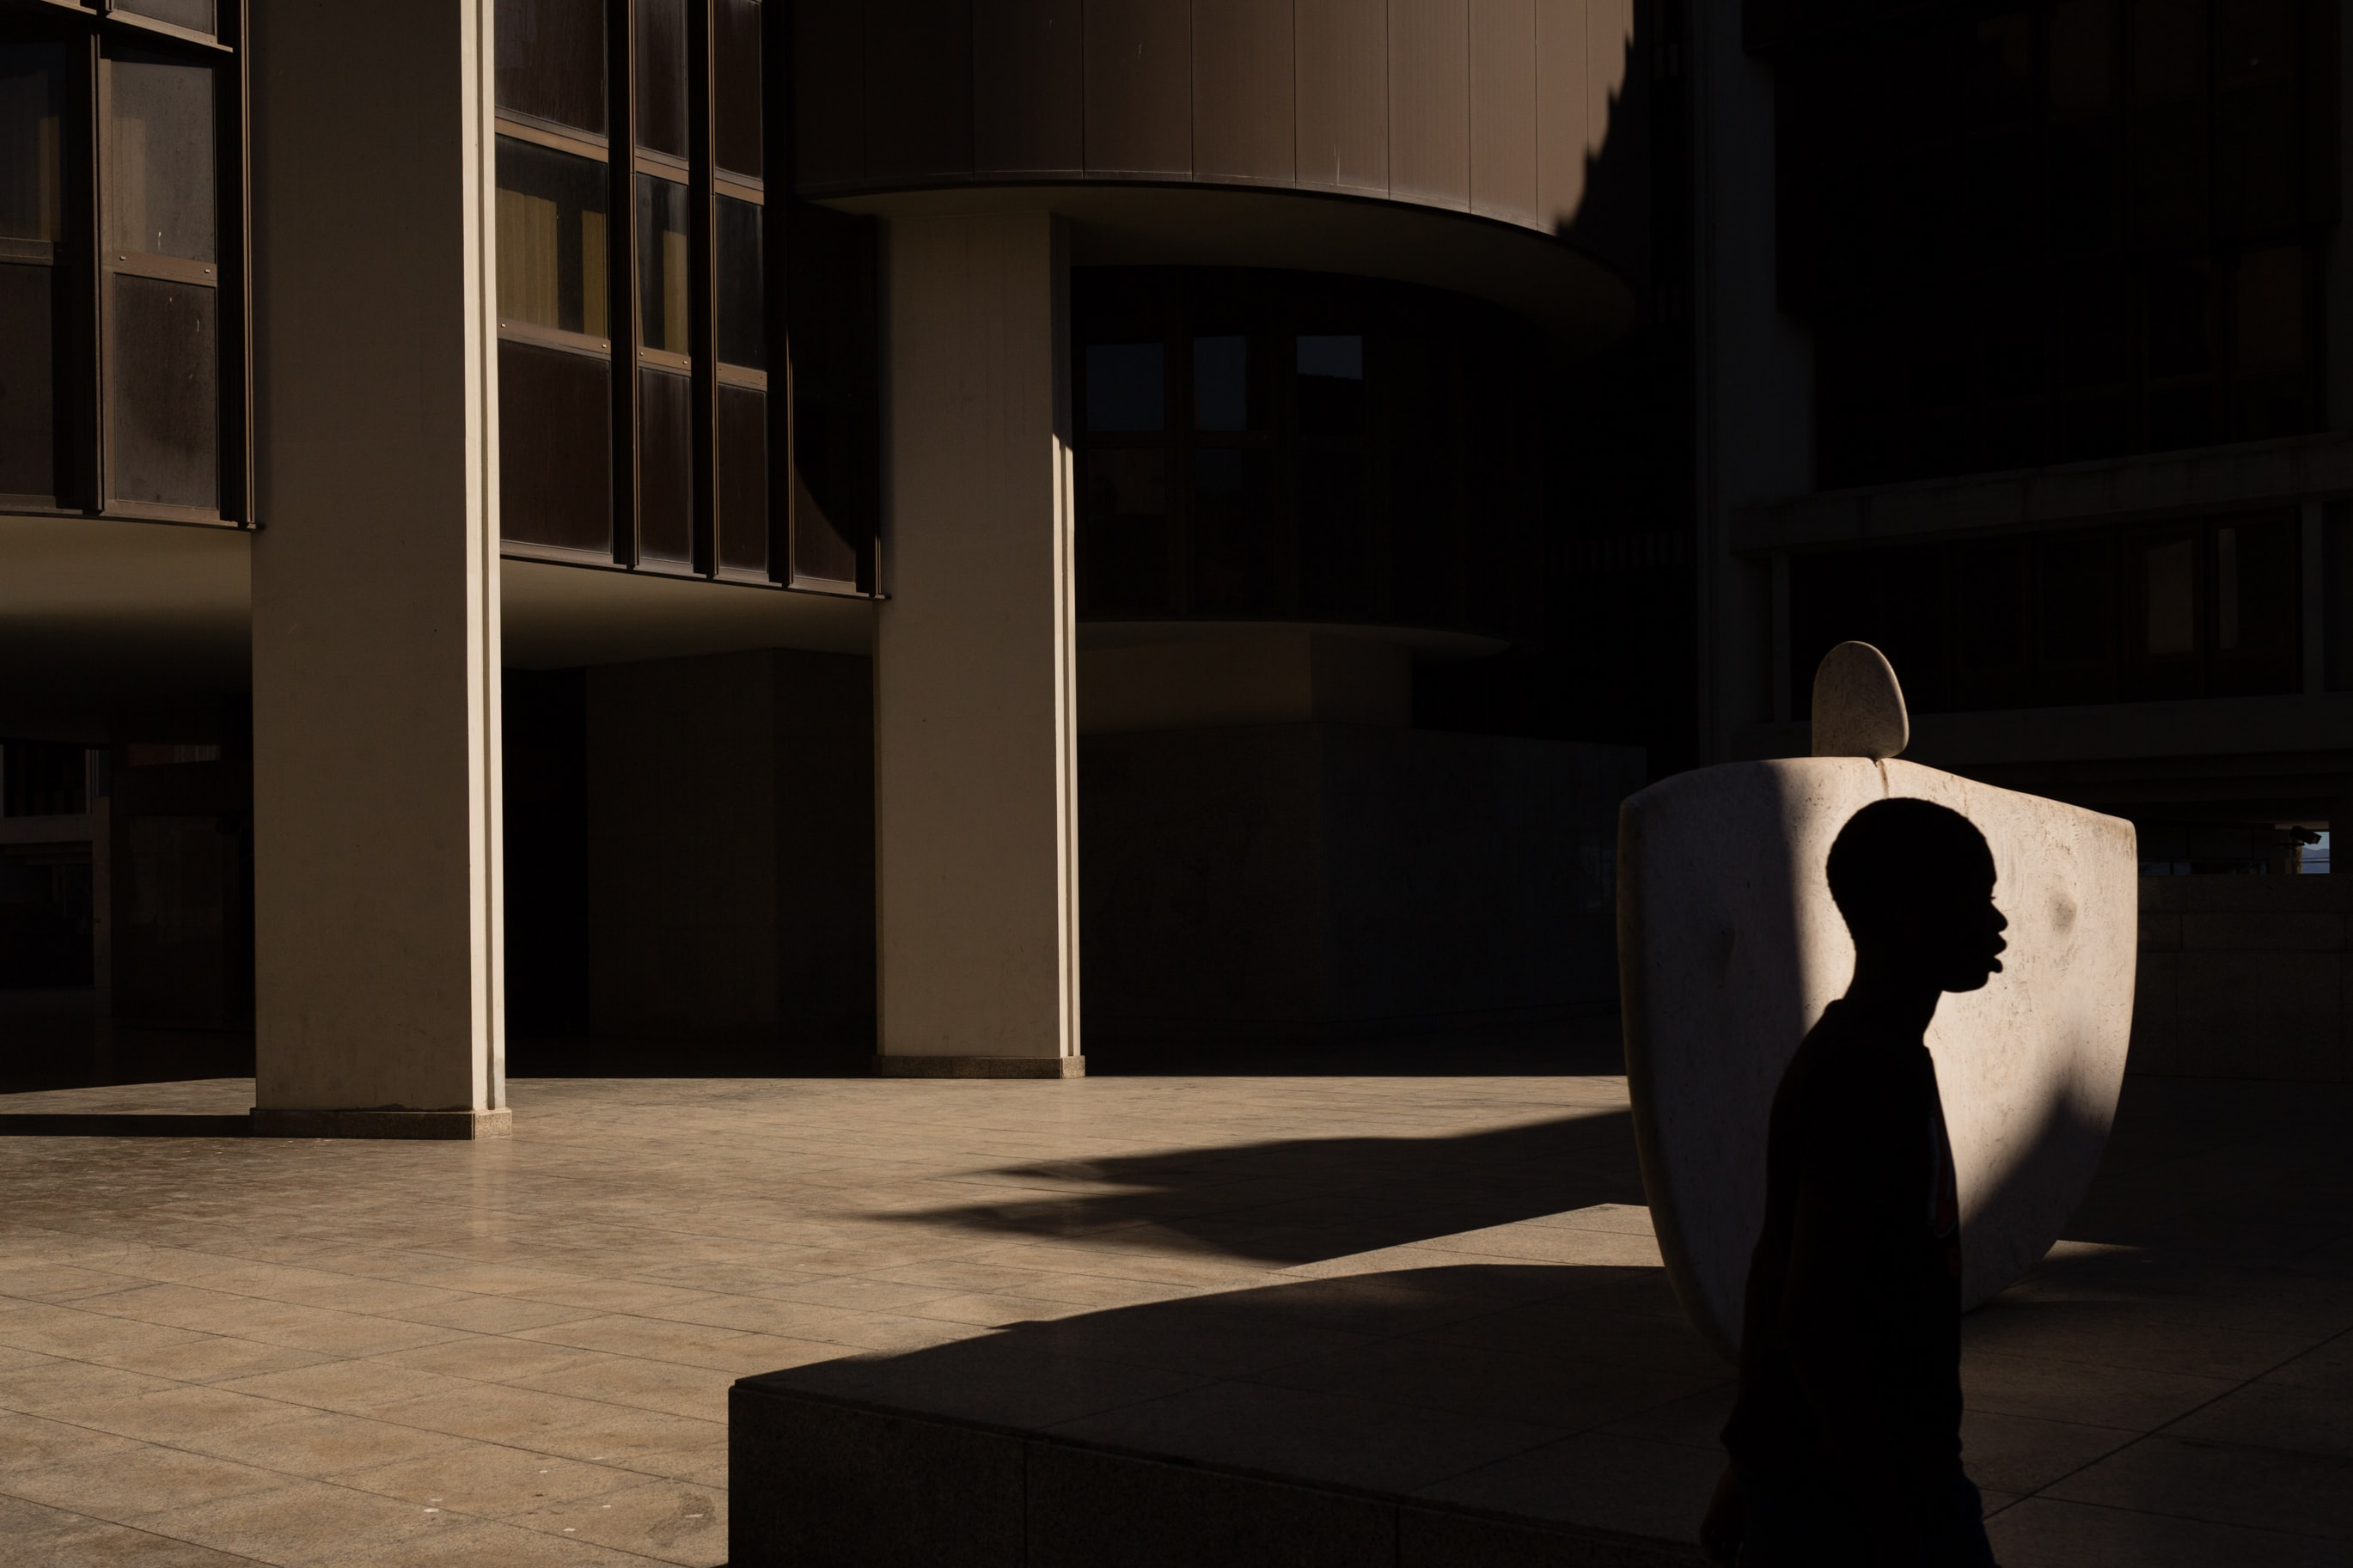 Silhouette of a person in front of minimalist building covered in shadows